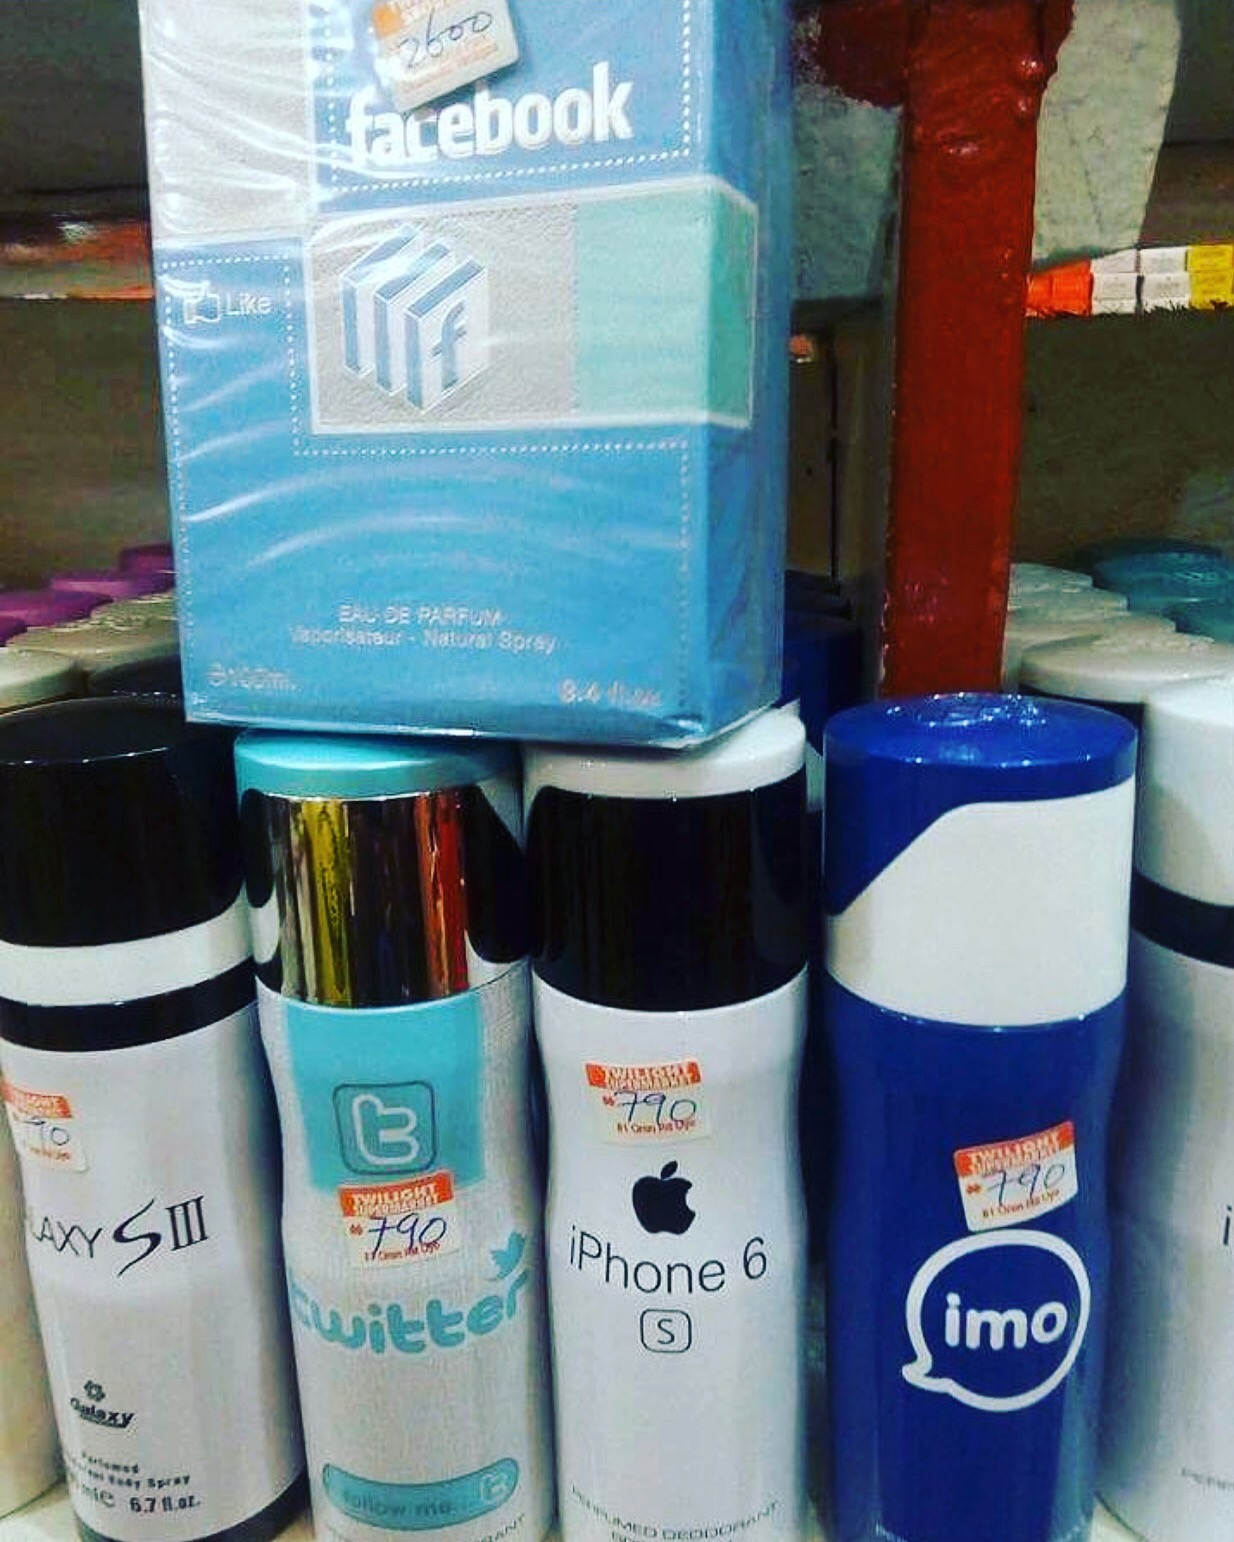 What's Your Flavour: Check about Facebook, IPhone 6s, Samsung Galaxy Perfumes